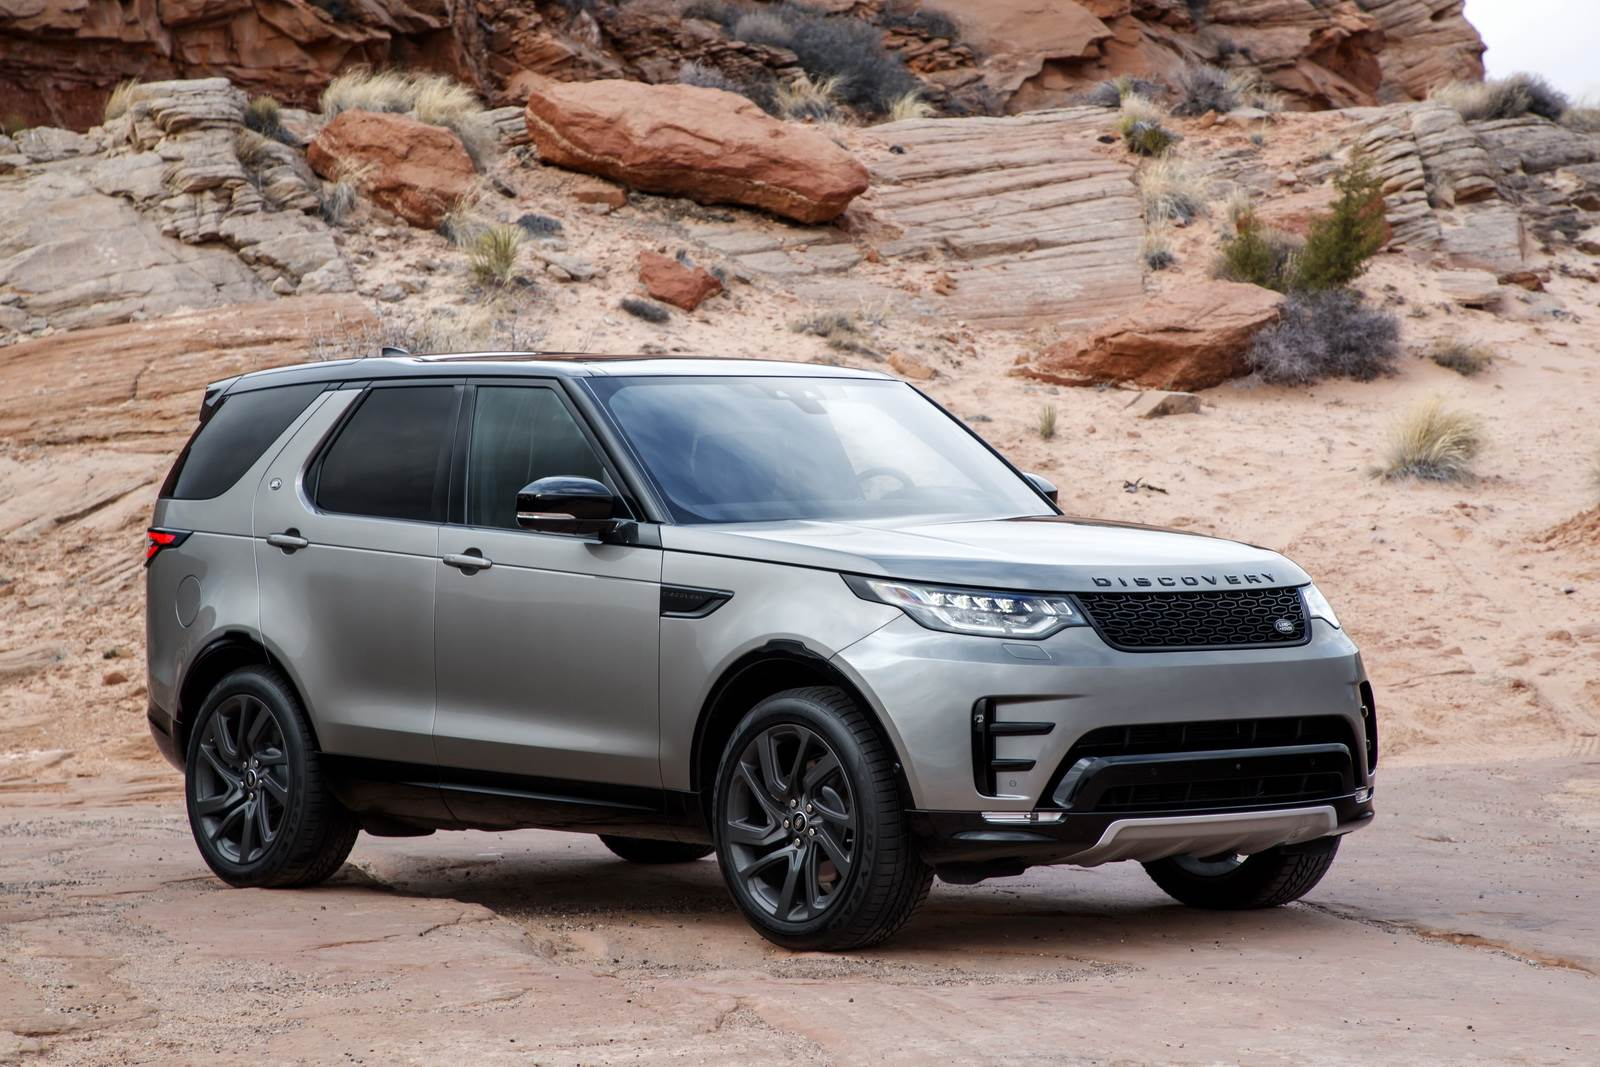 2017 Land Rover Discovery to be priced from Rs 68 lakh